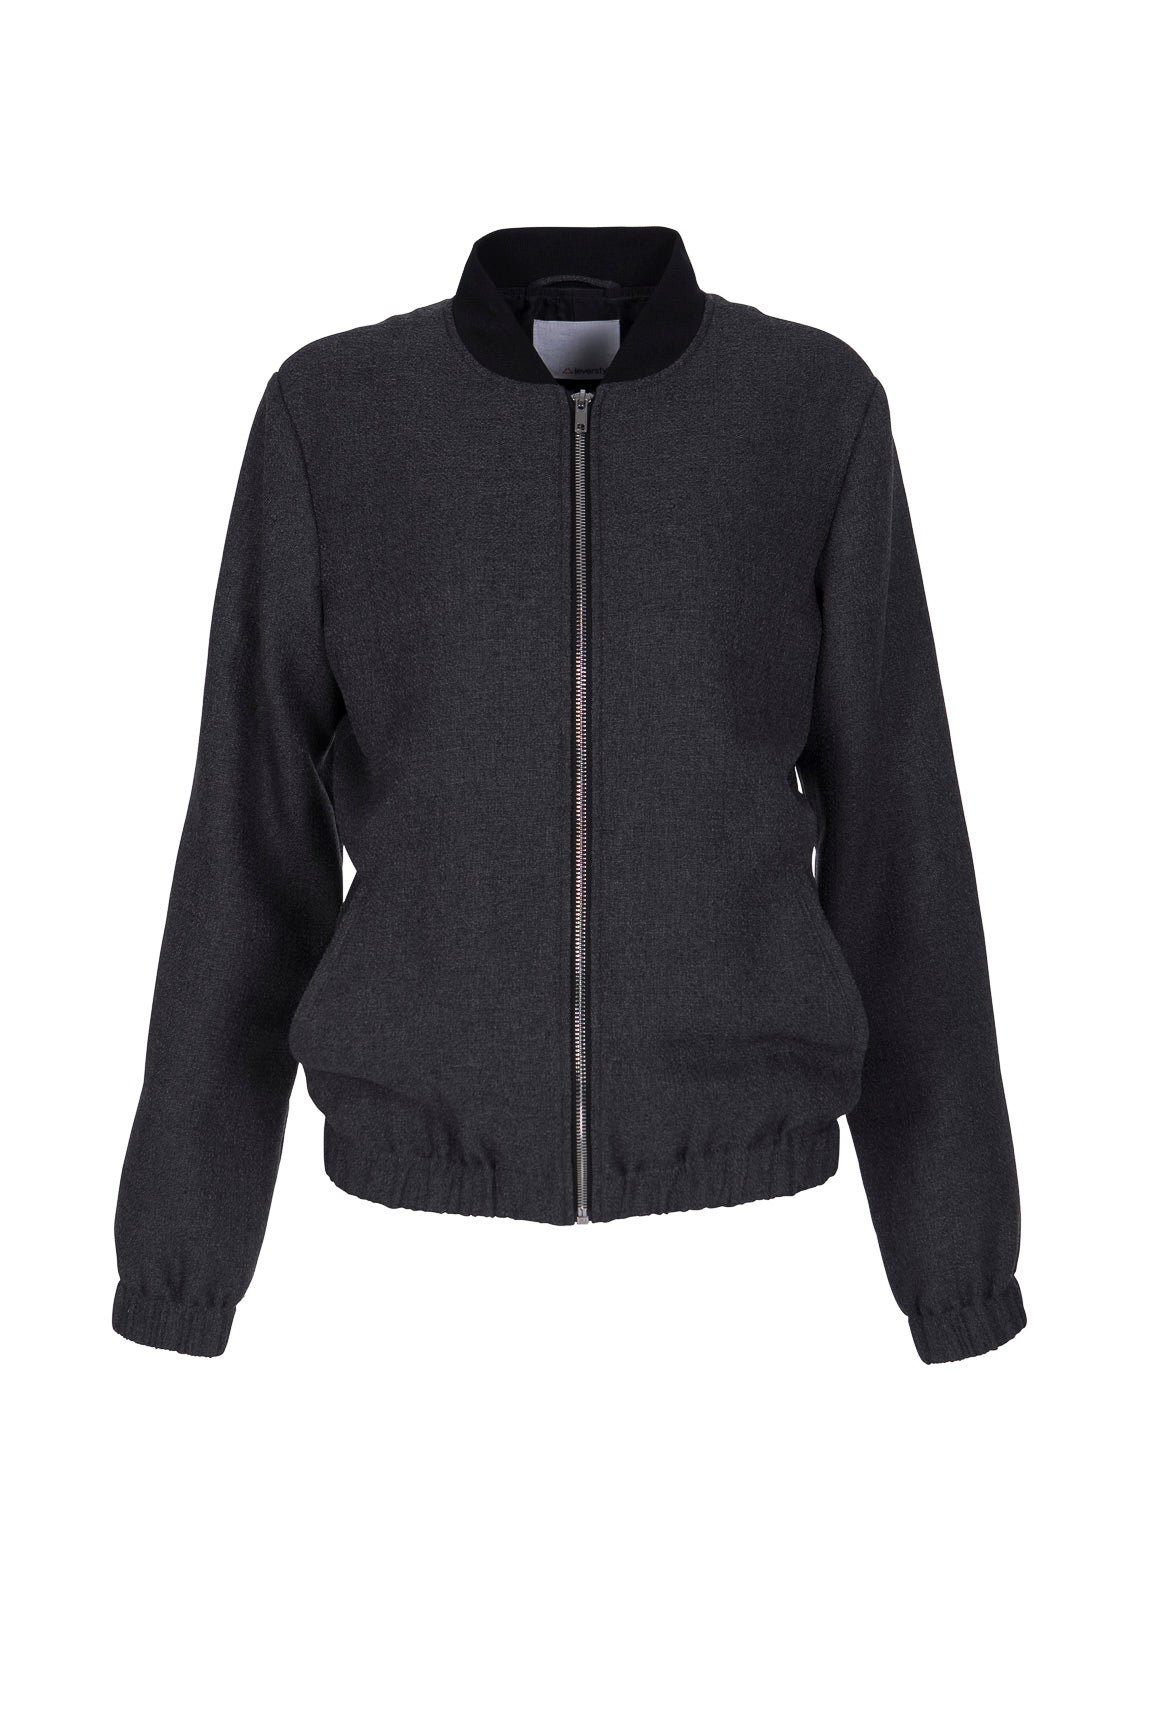 Women's Bomber Jacket with Elastic Hem and Cuff